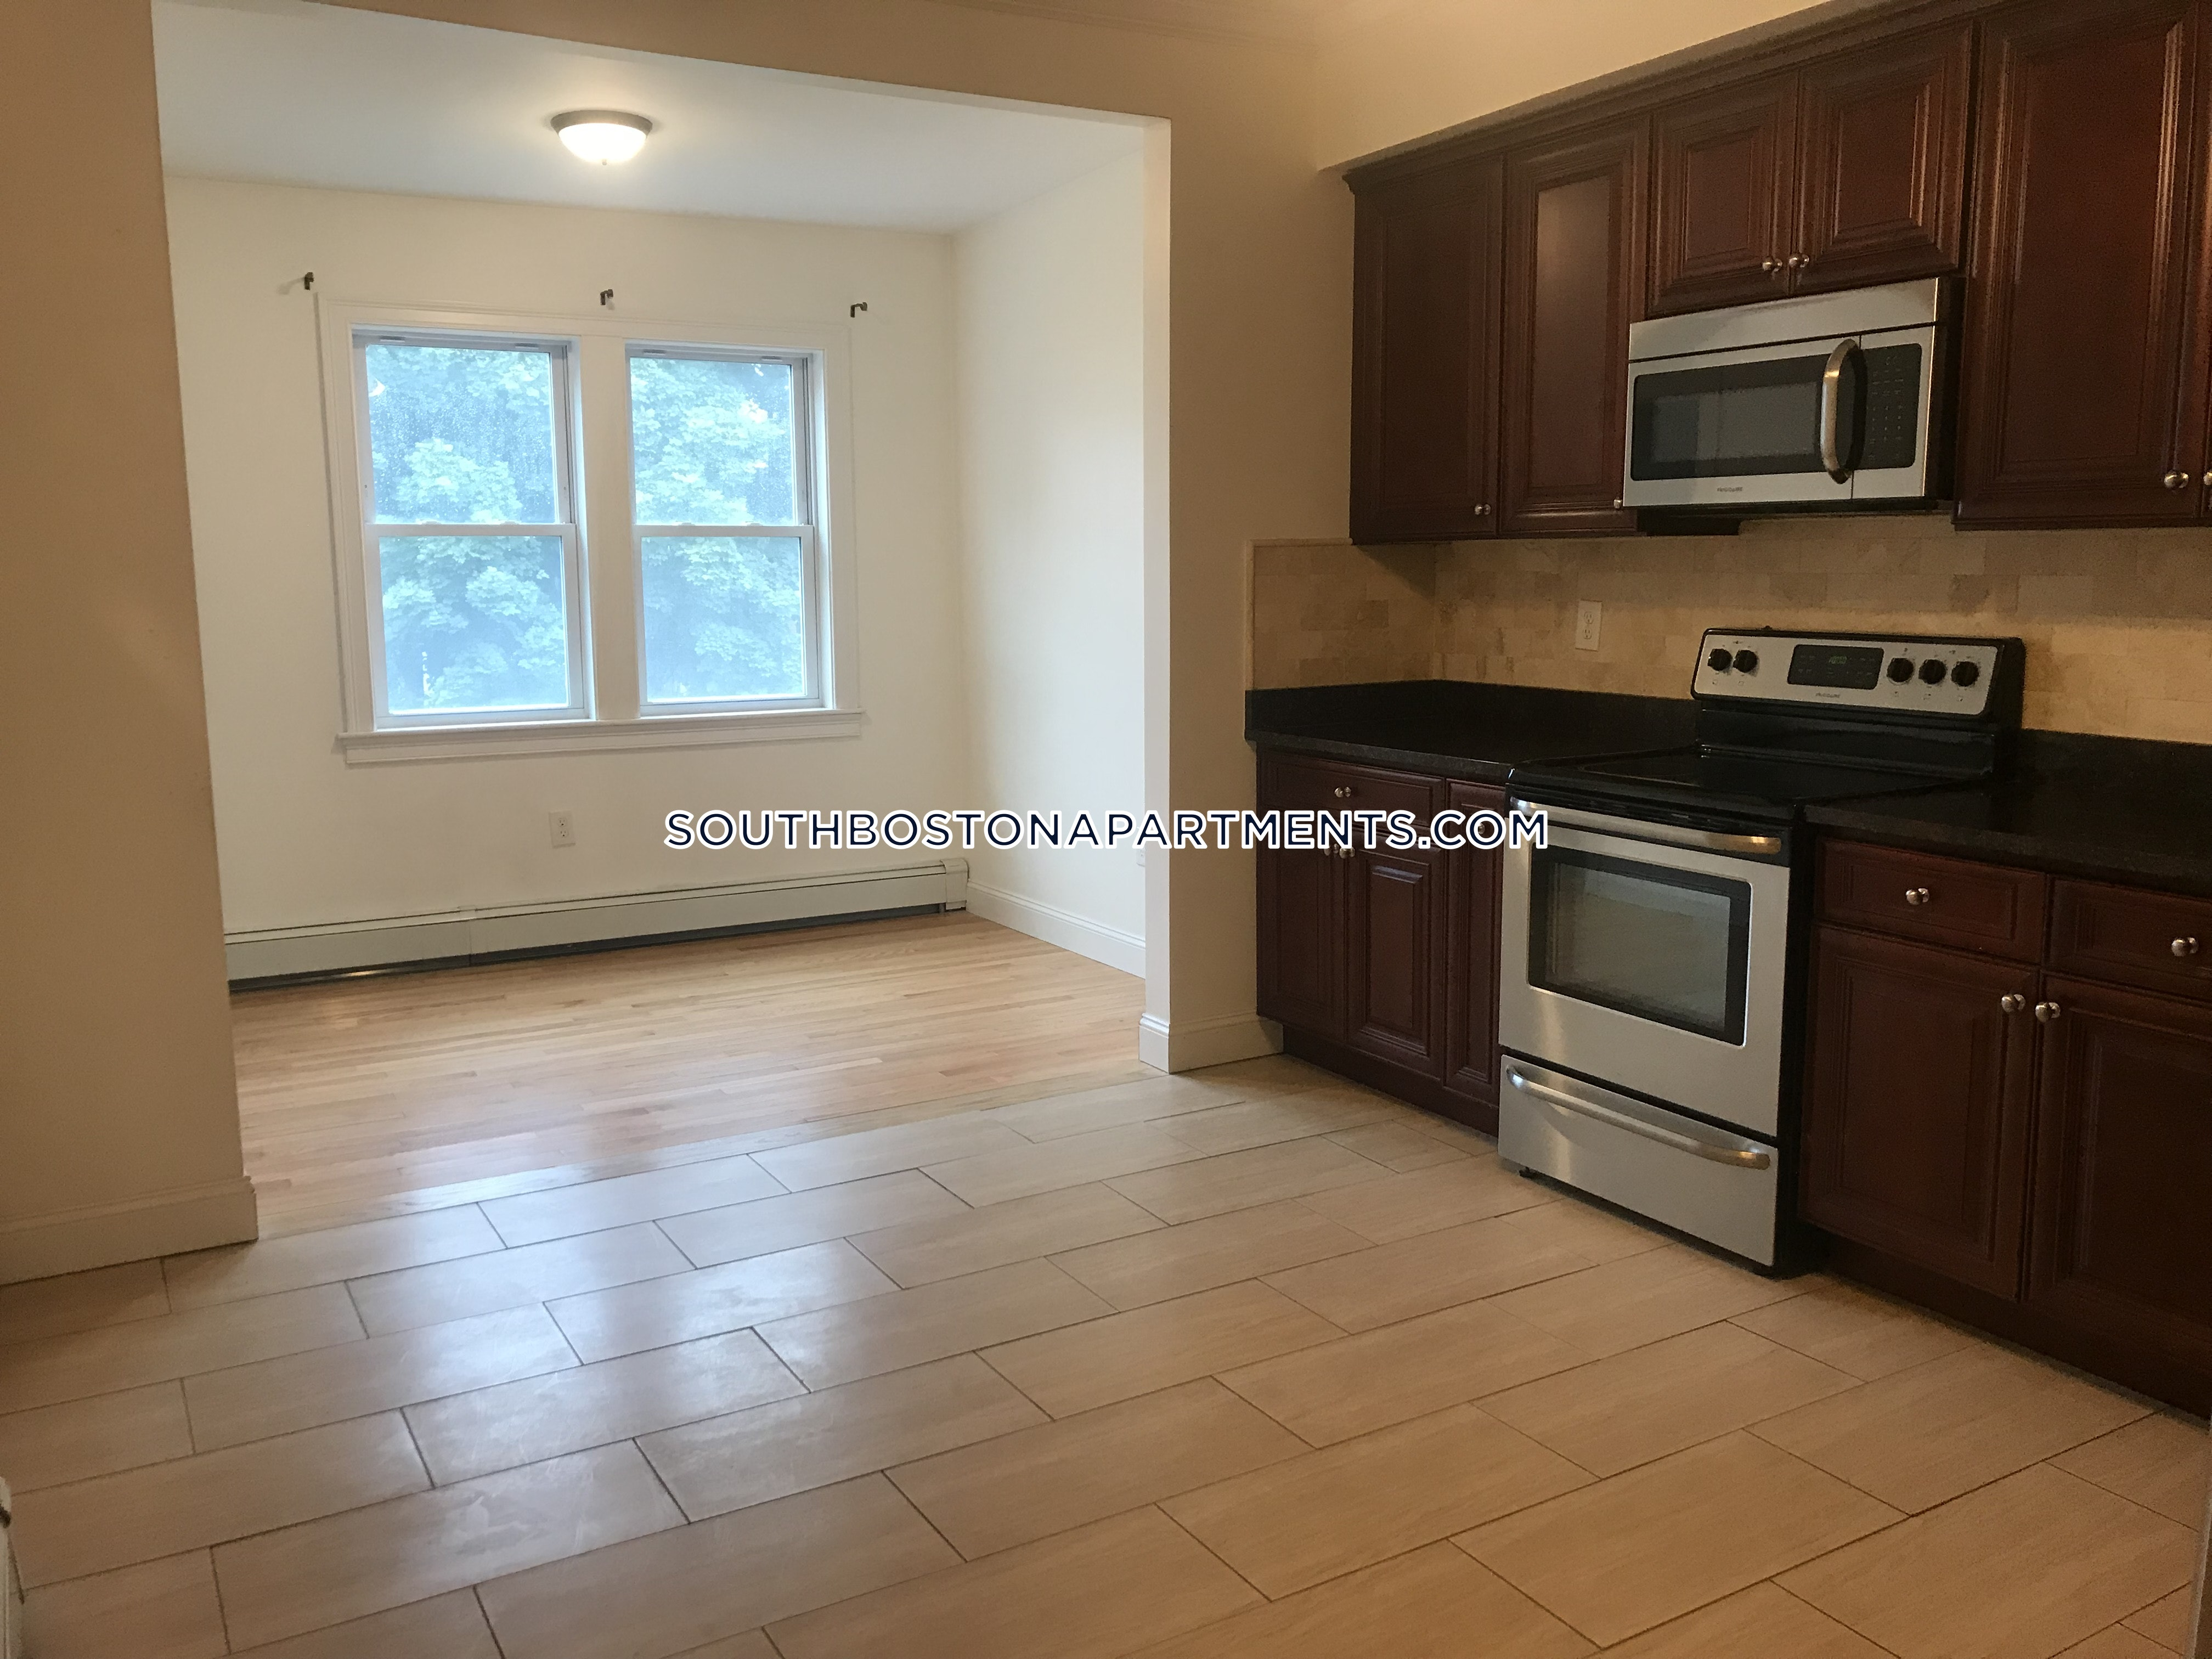 South Boston Apartments Apartment For Rent 3 Bedrooms 1 Bath 250